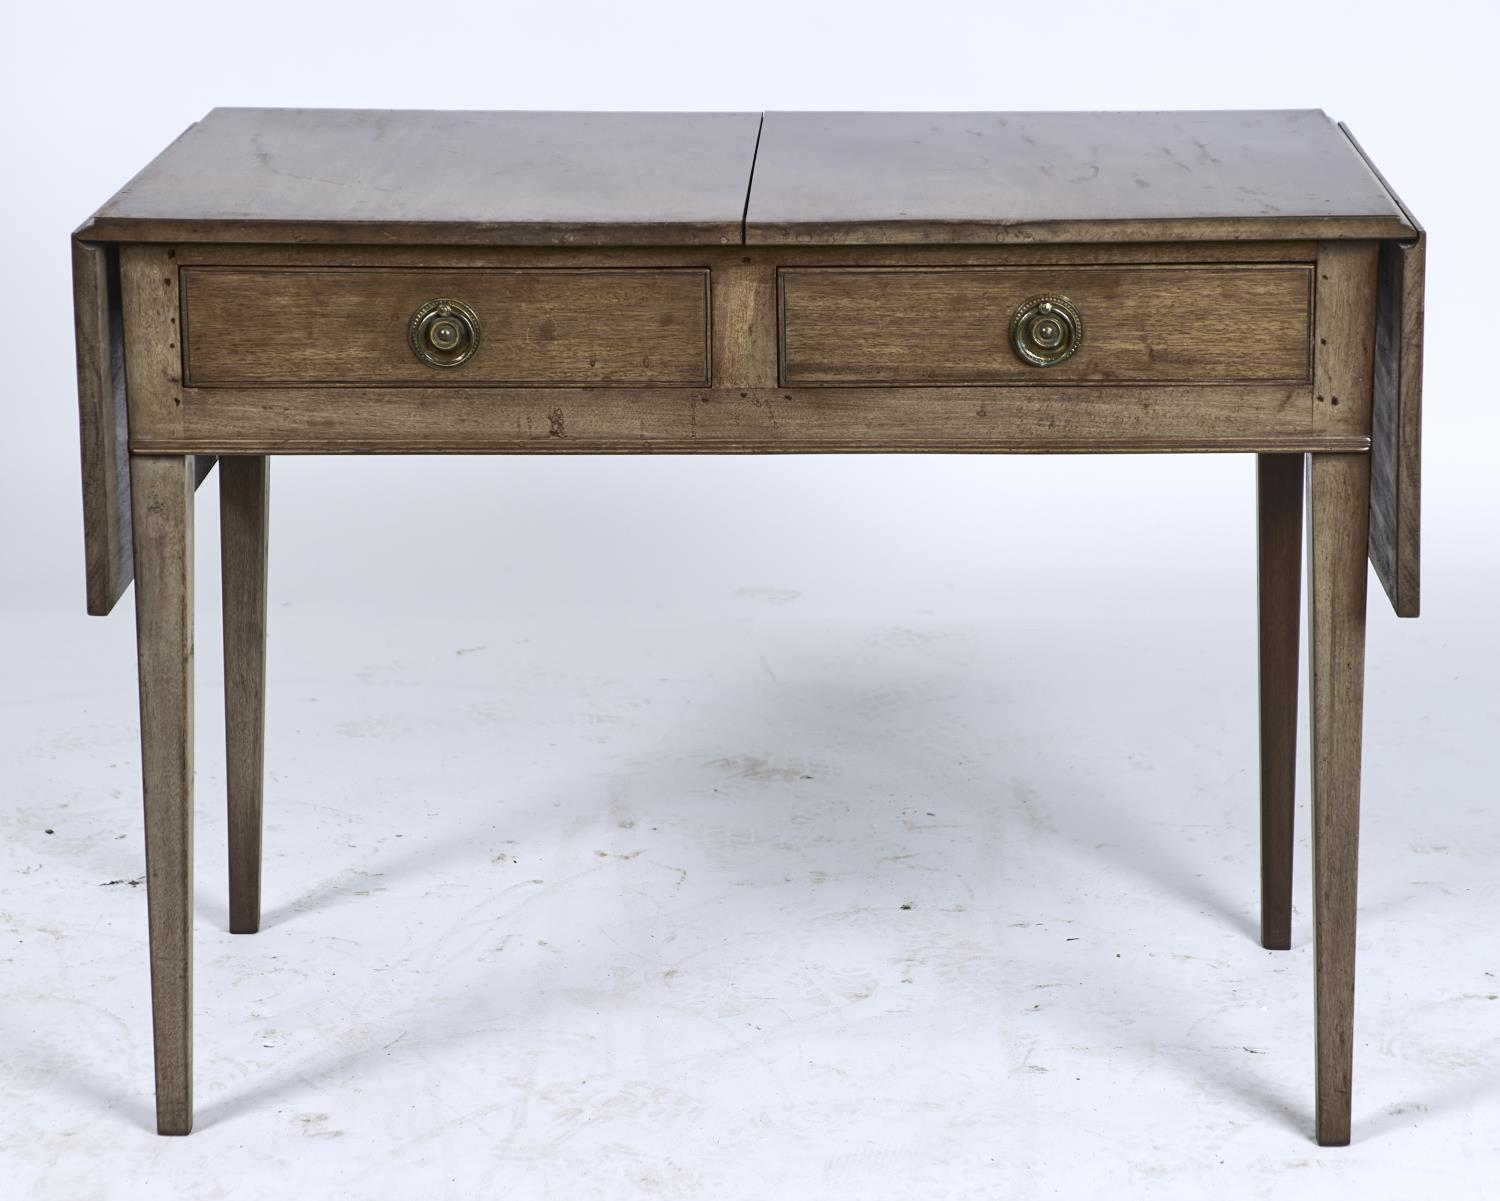 A MAHOGANY TWO DRAWER TABLE, THE RECTANGULAR TOP WITH PAIR OF FOLDING FLAPS, SCRATCH MOULDED DRAWERS